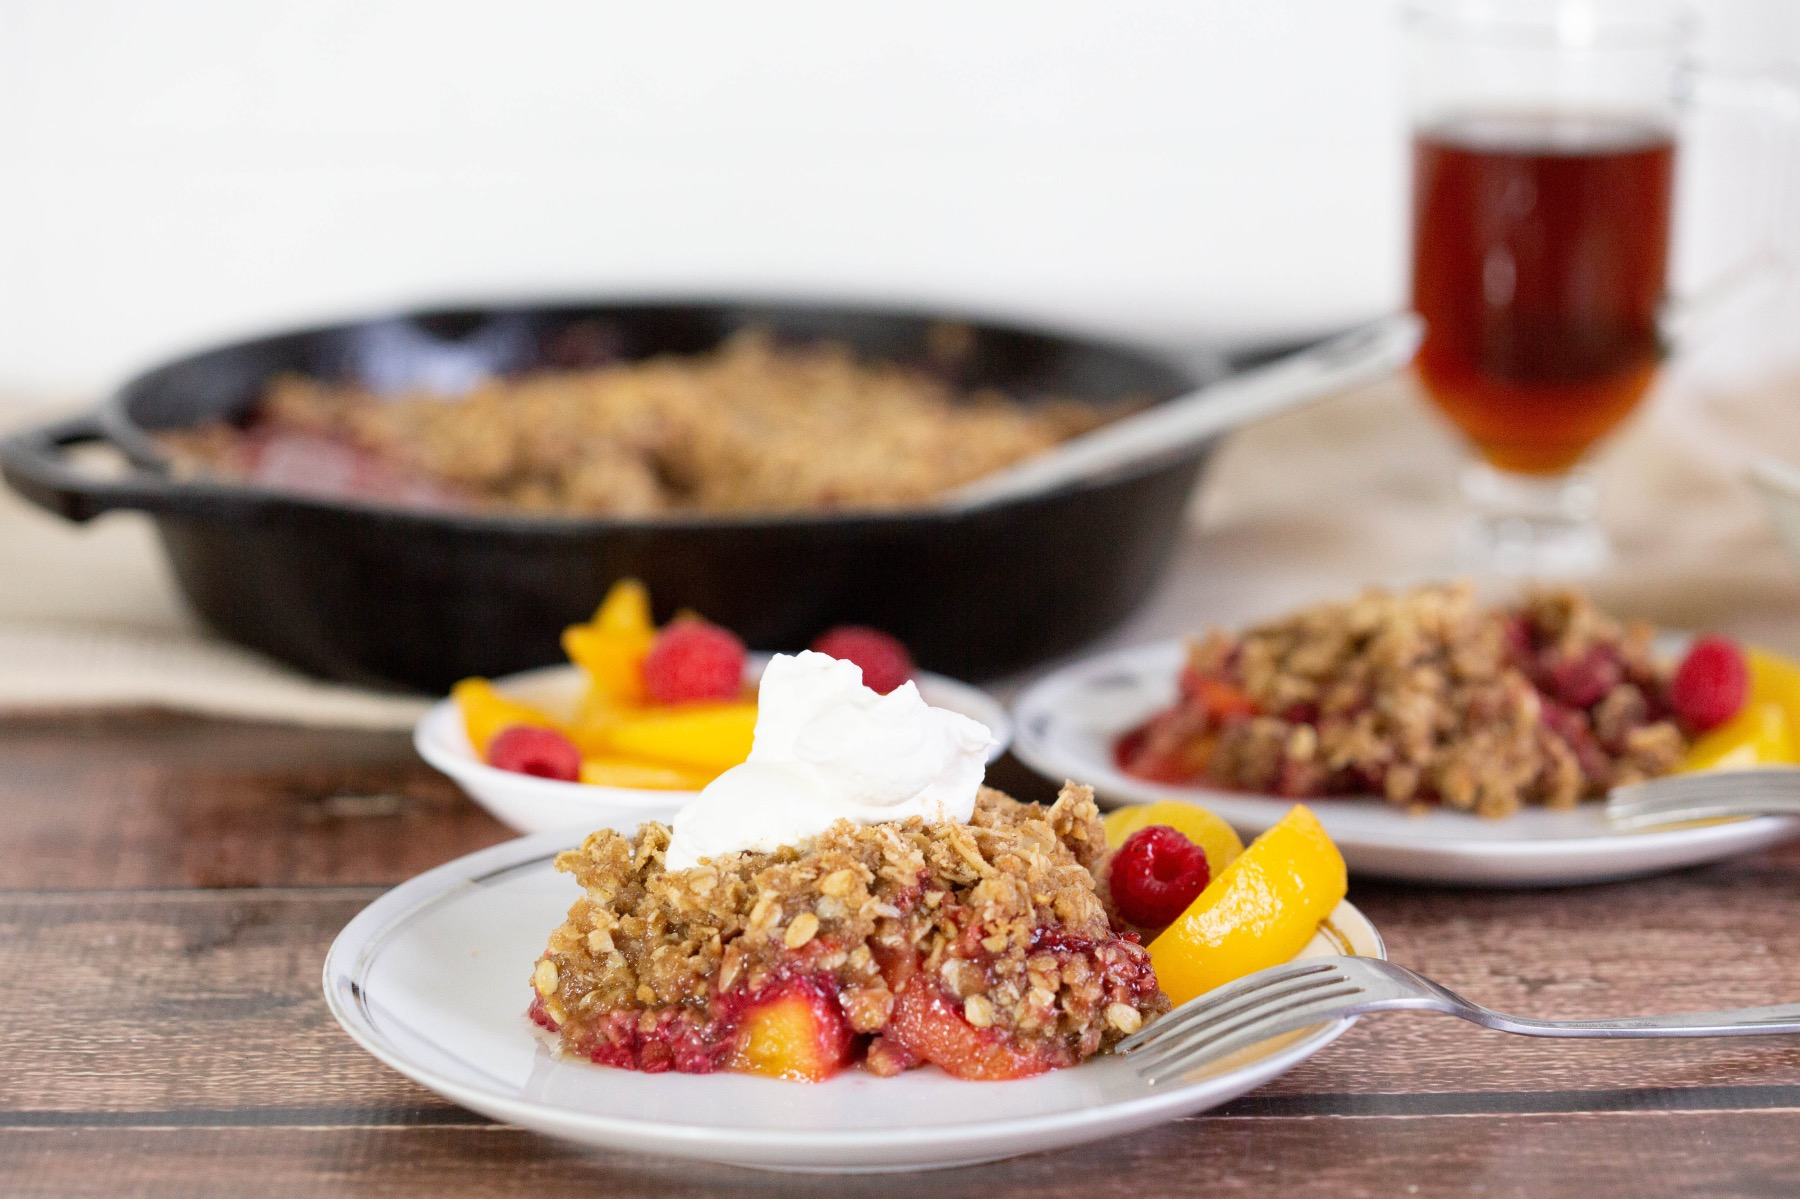 serving a raspberry and peach crisp dessert